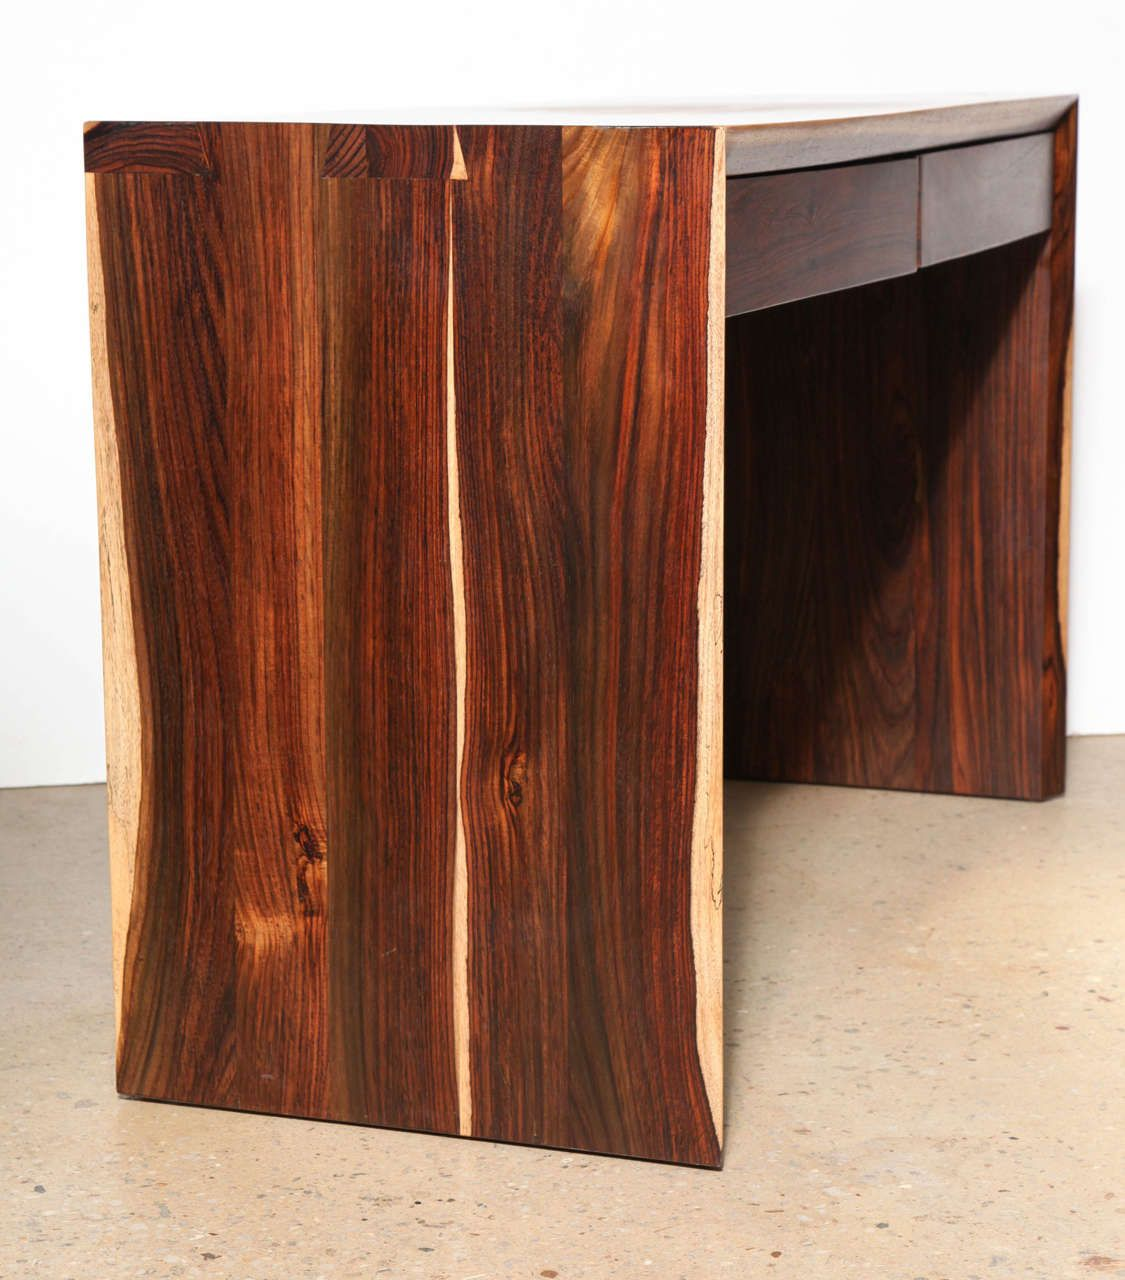 Craft Revival hand crafted Cocobolo Wood Desk   Cocobolo   Pinterest     Craft Revival Cocobolo Desk   From a unique collection of antique and  modern desks and writing tables at